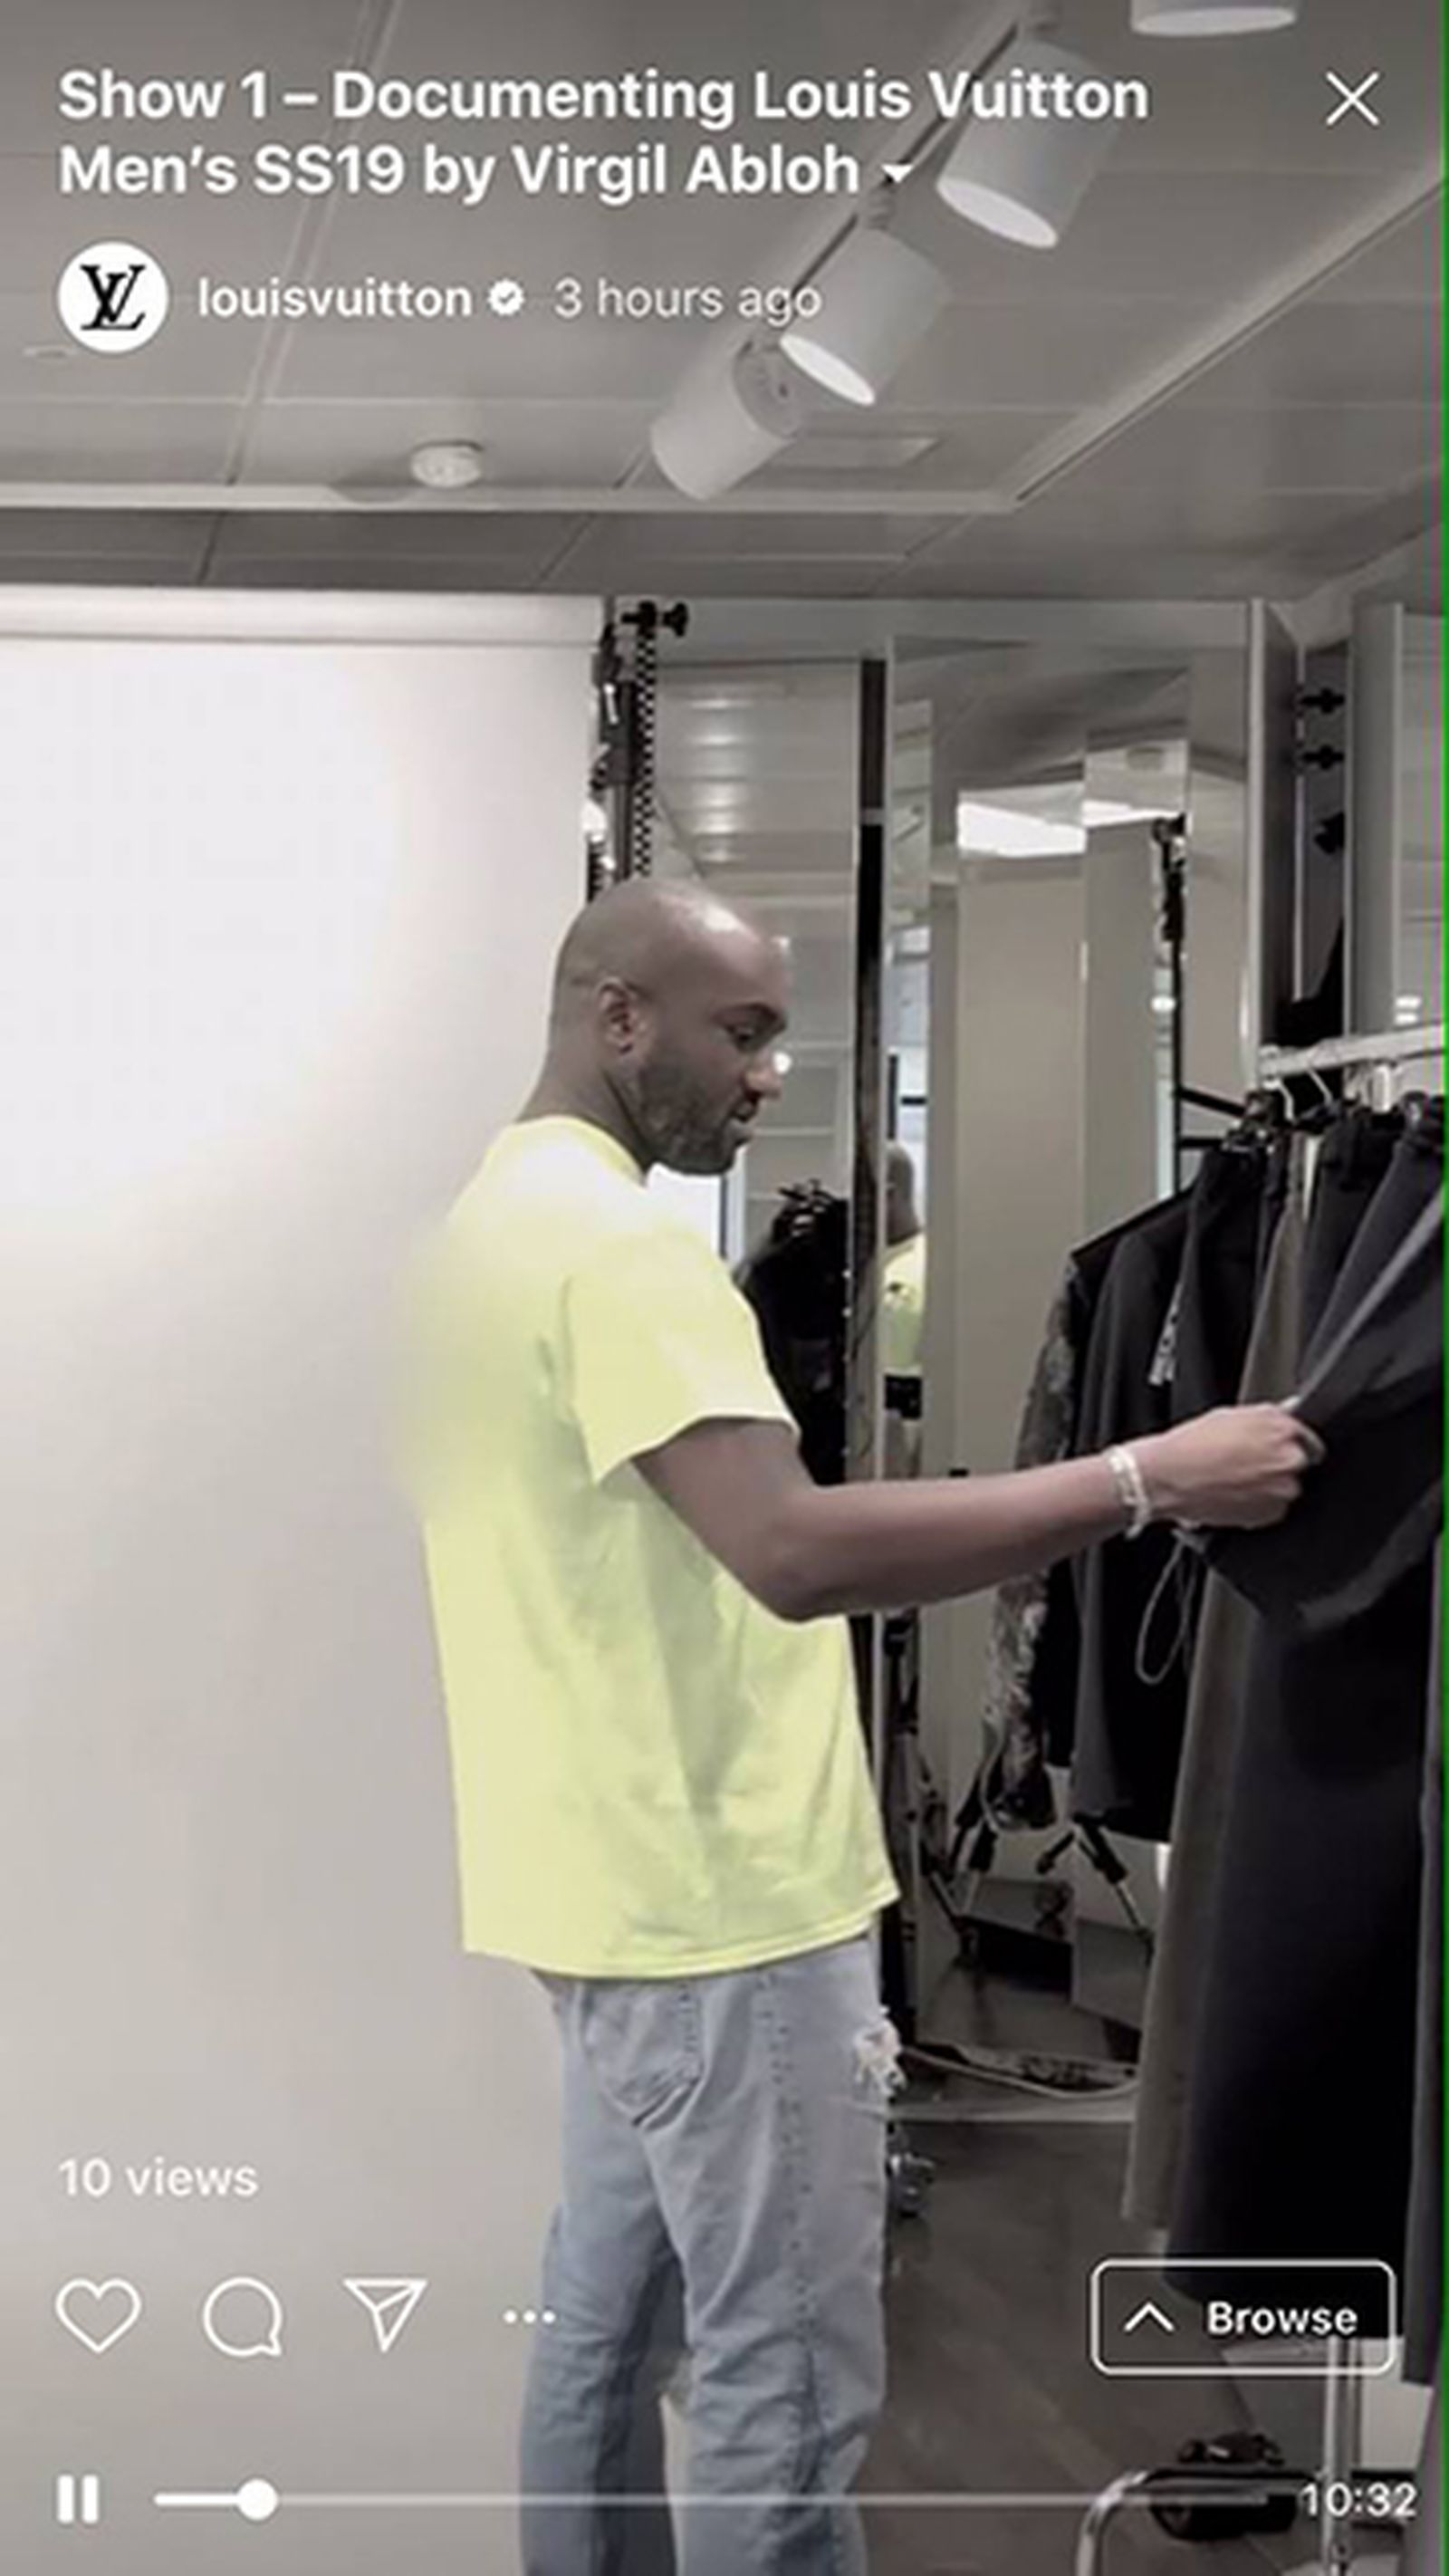 Virgil Abloh Makes His First Louis Vuitton Collection on IGTV